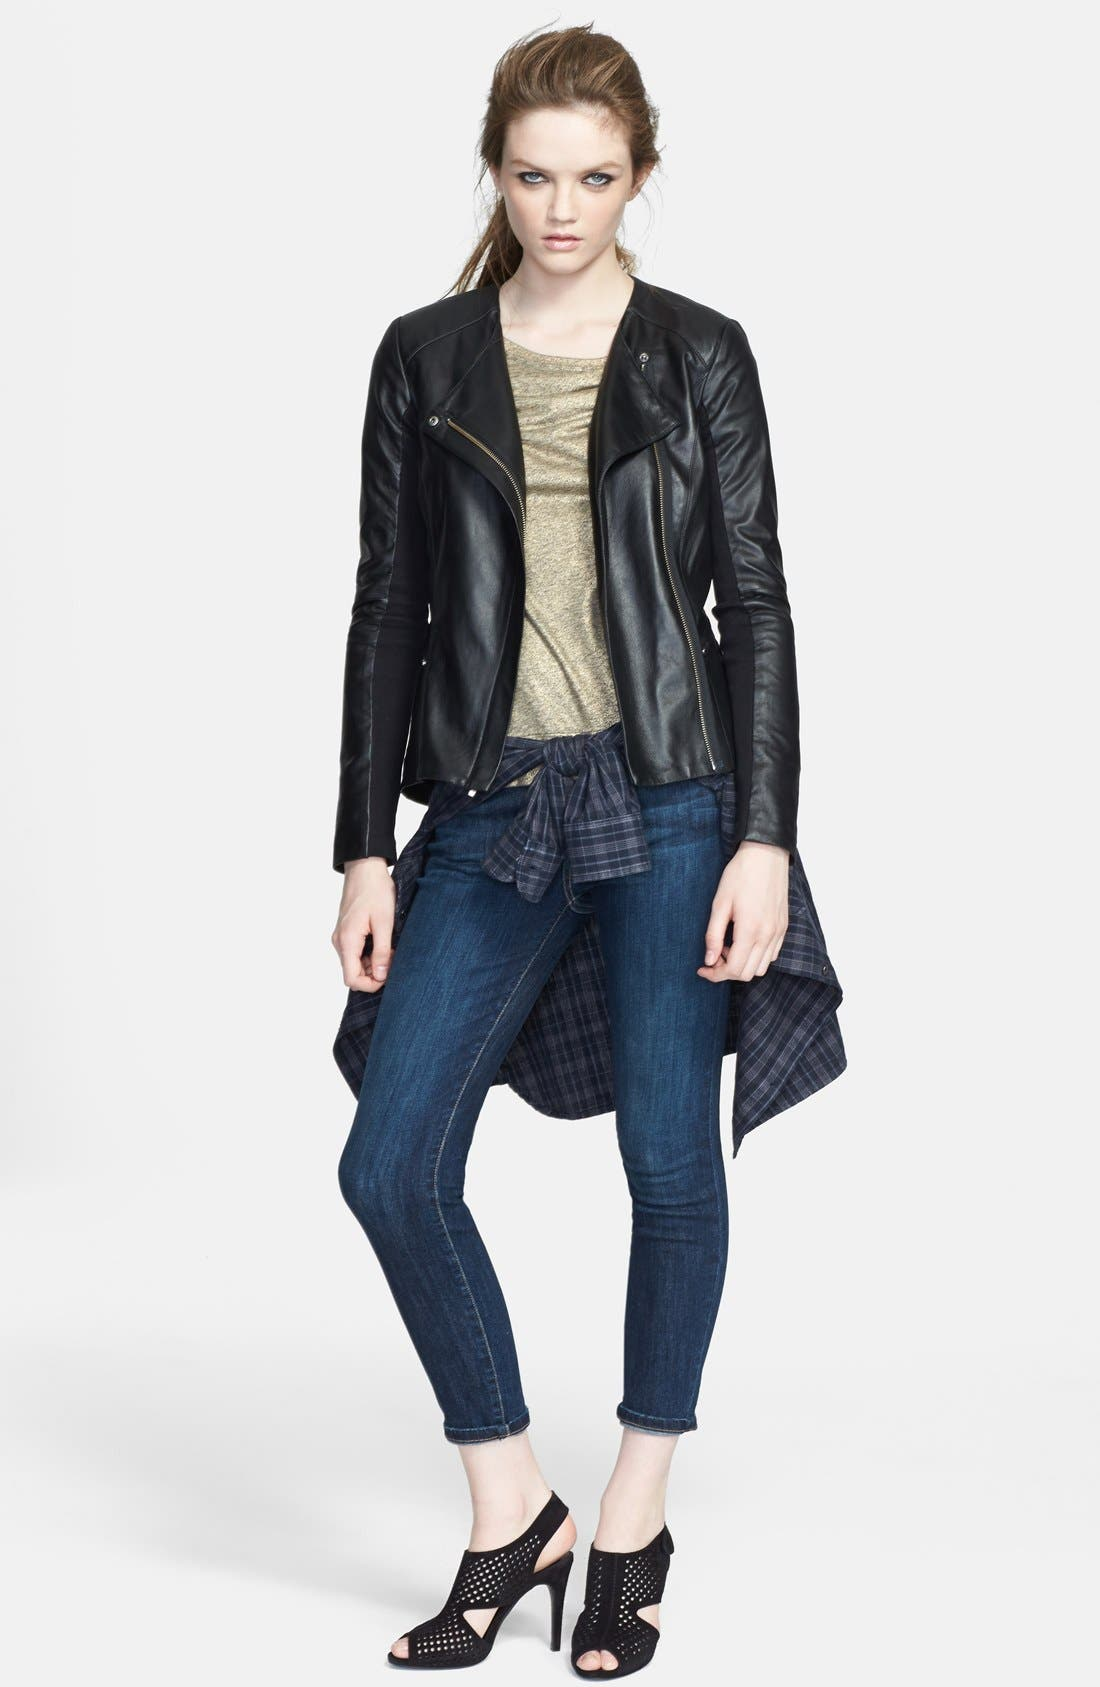 VEDA, 'Aires' Asymmetrical Zip Leather Jacket, Alternate thumbnail 2, color, 001